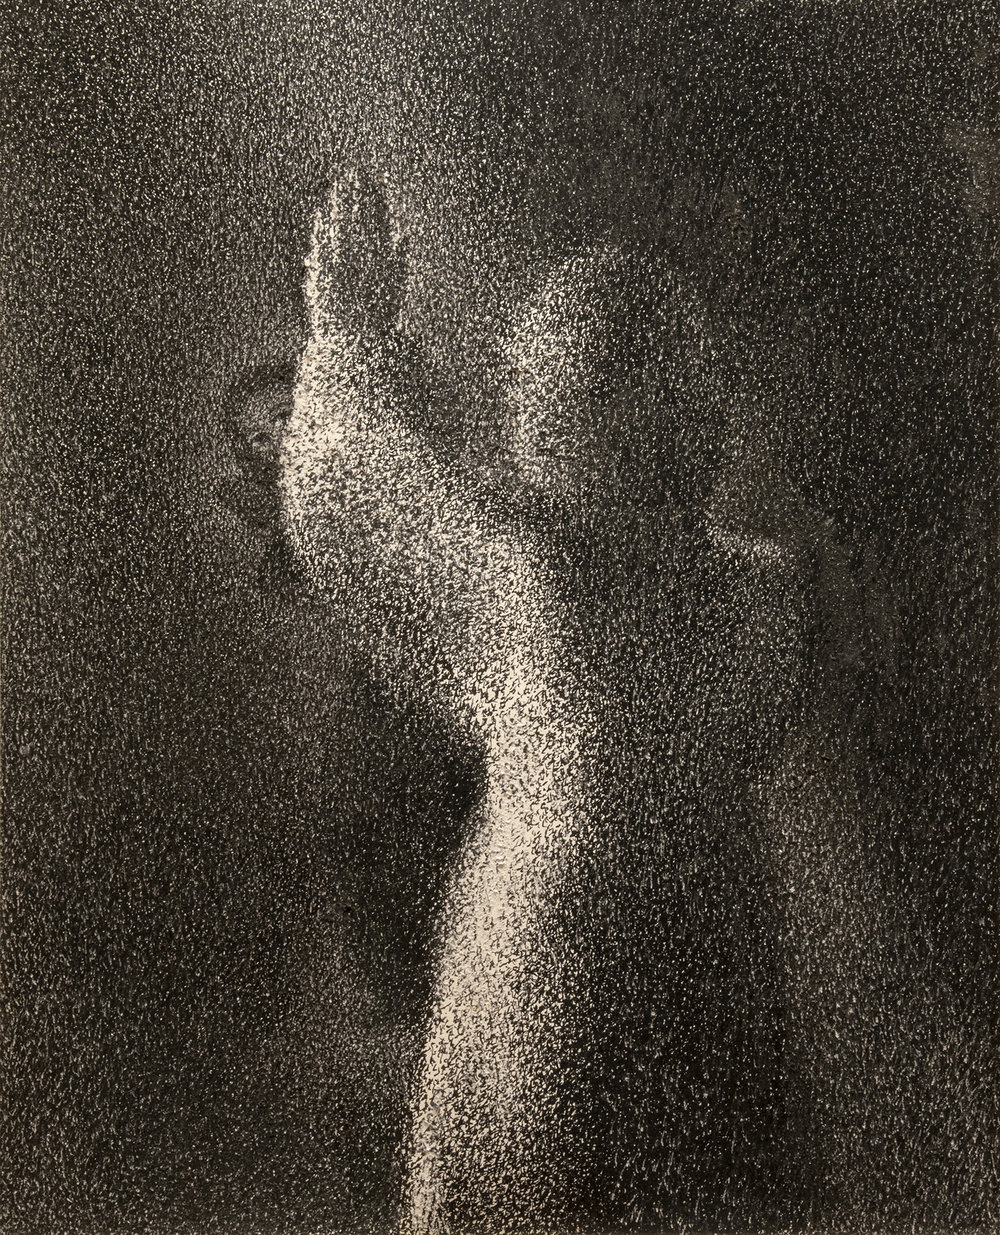 Figure 5:  Annunciation to Mary .  Luke 1:26-38 . Pen and ink, 1979. On loan from Miriam Yardumian.